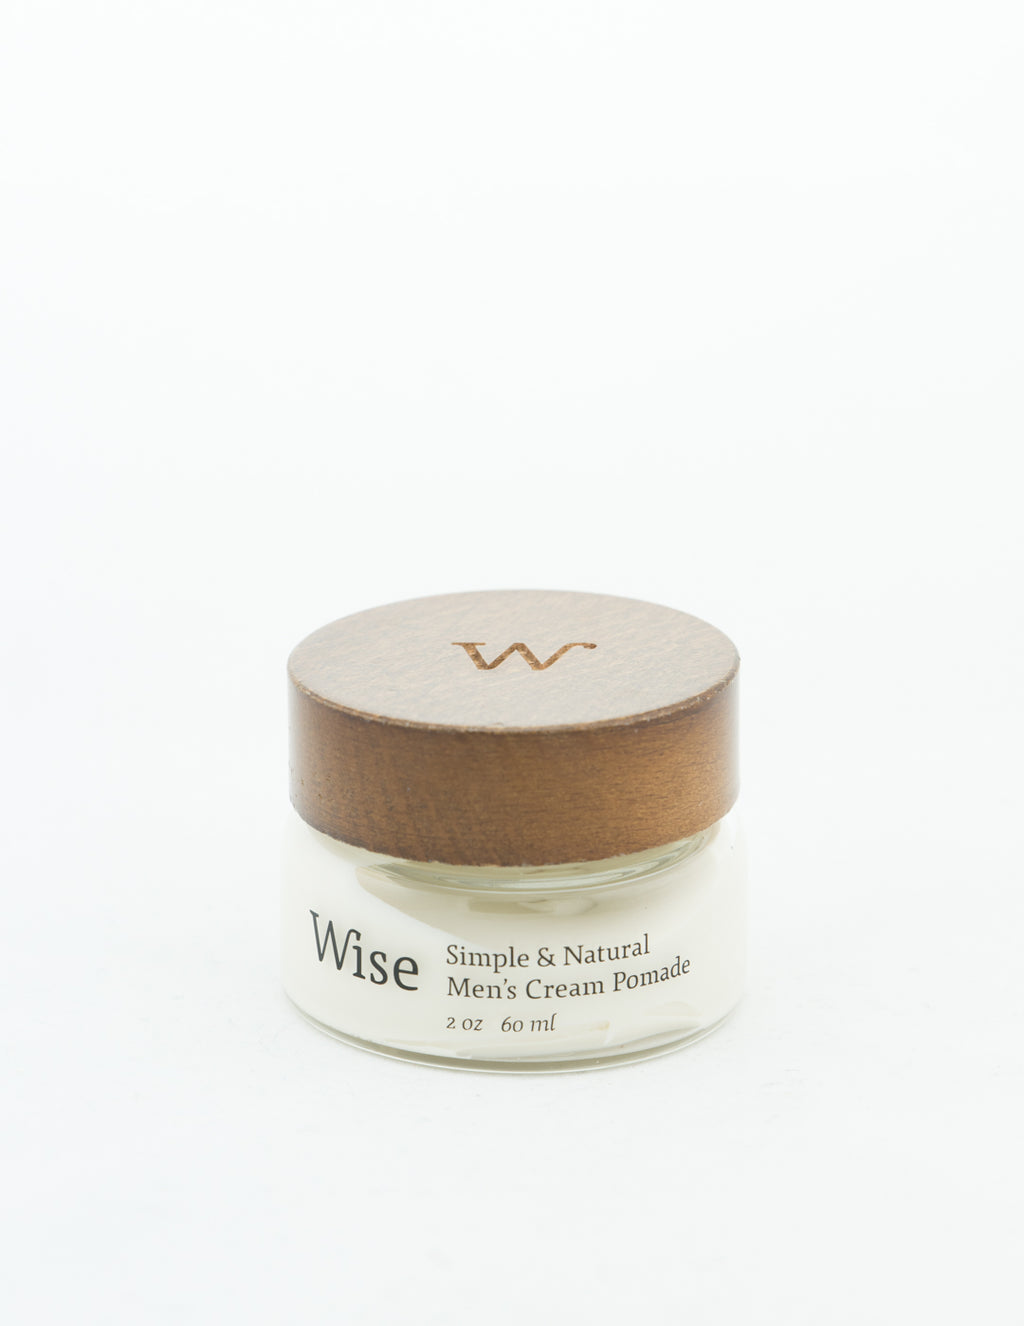 Wise - Red Maple Cream Pomade